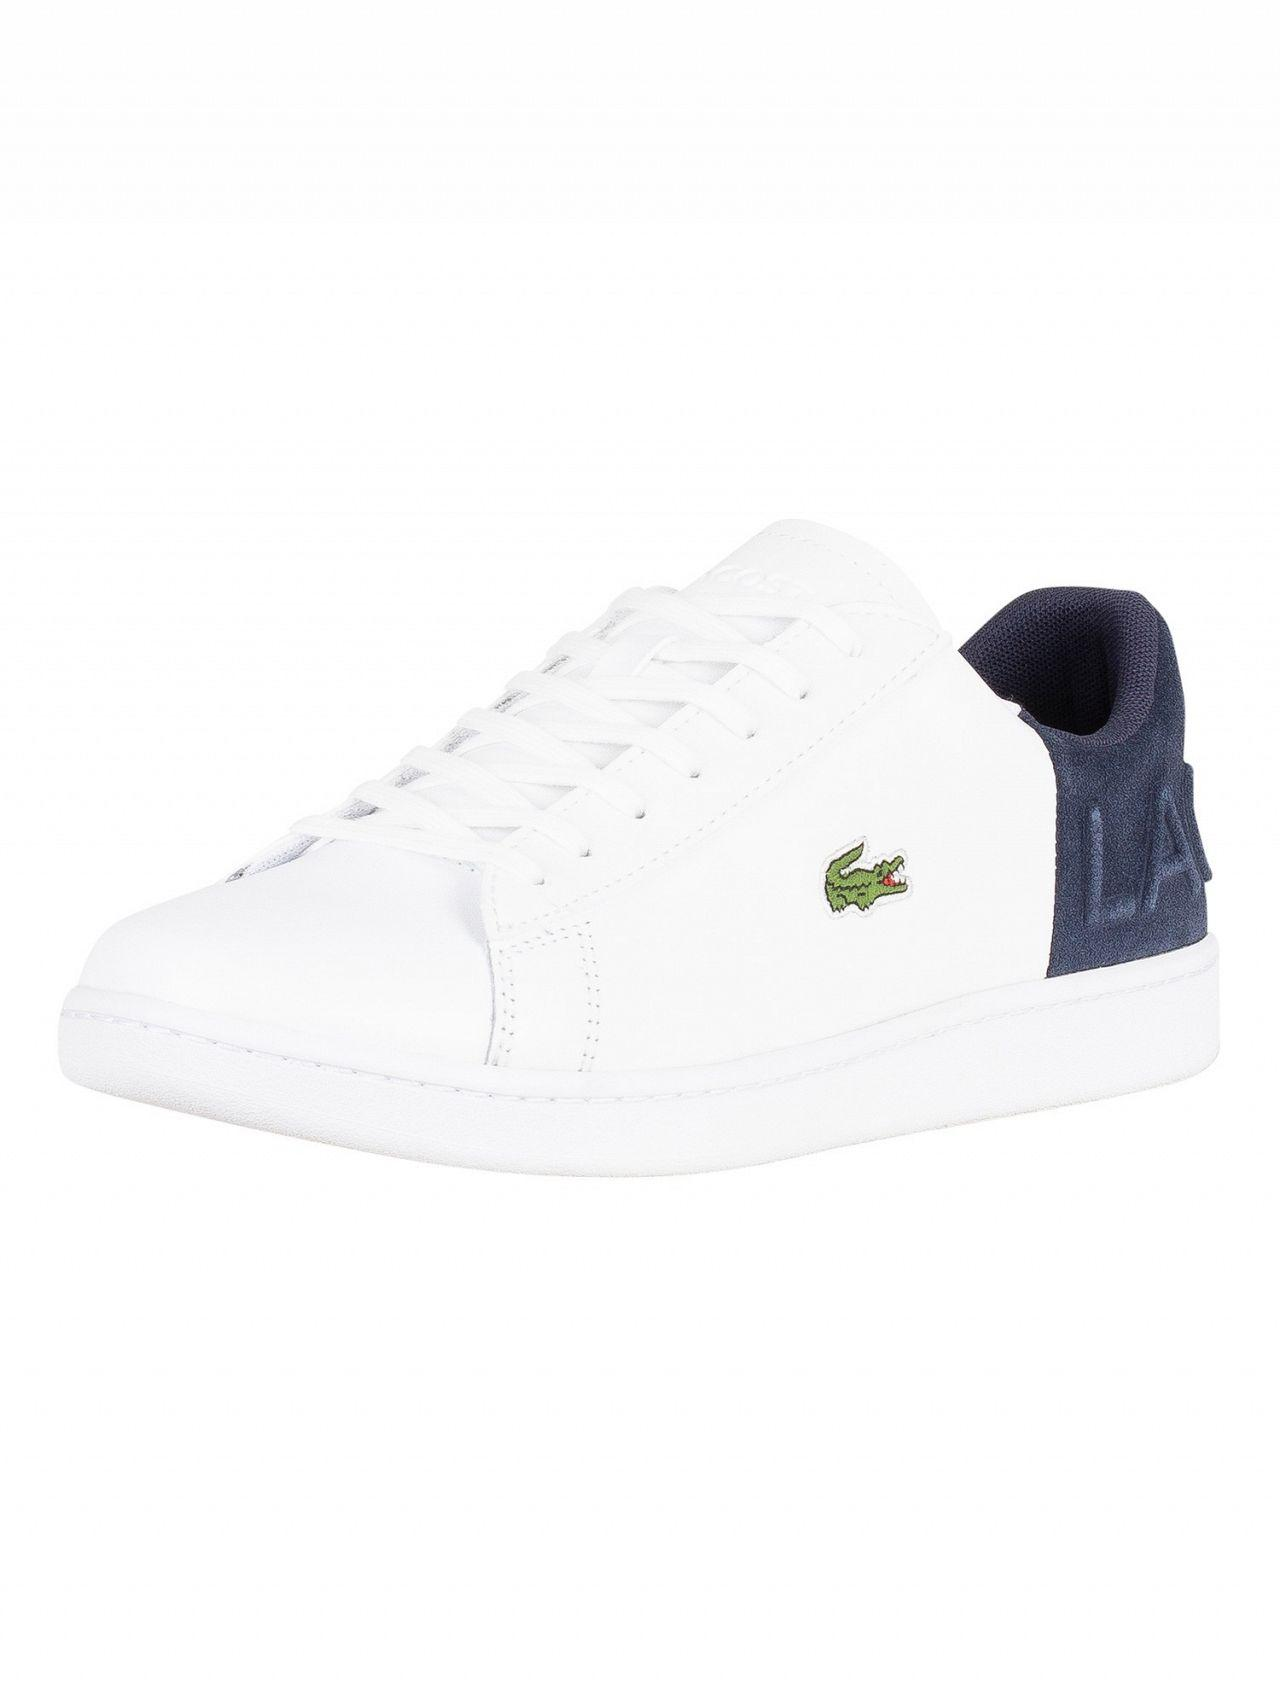 e2f943d39a6d40 Lyst - Lacoste White navy Carnaby Evo 318 2 Qsp Spm Leather Trainers ...